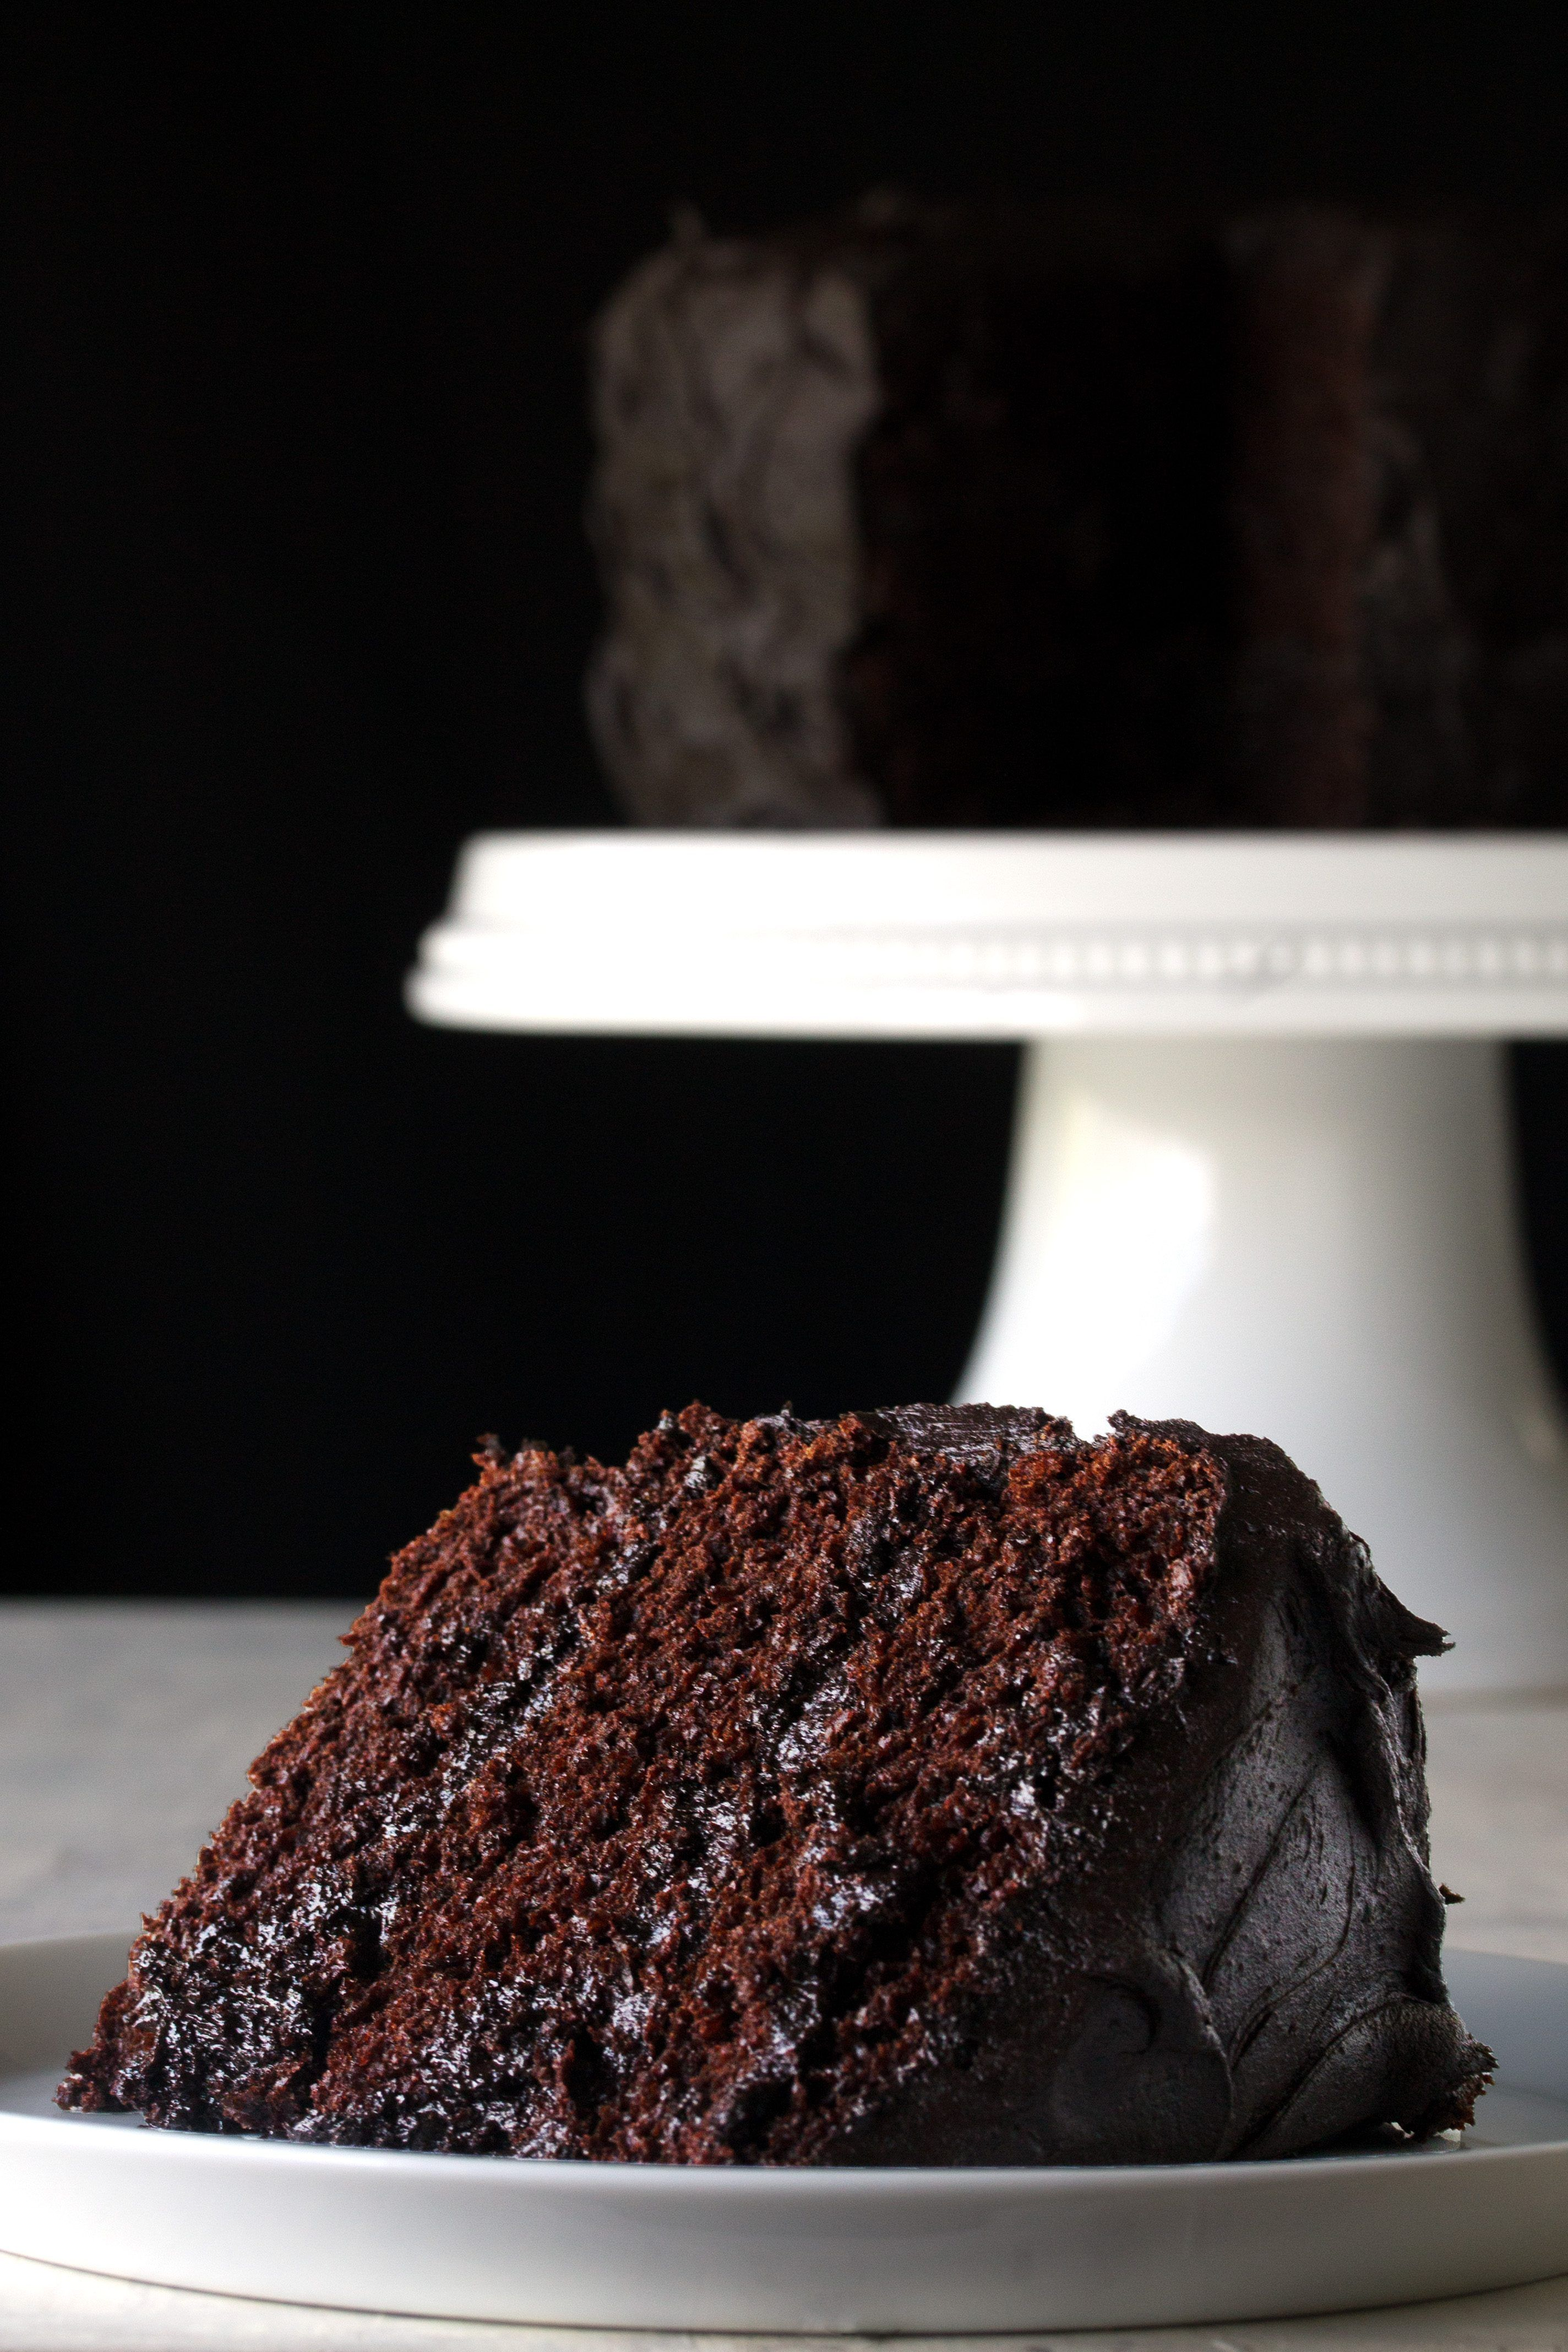 Super Moist Choclate Cake With Cream Filling